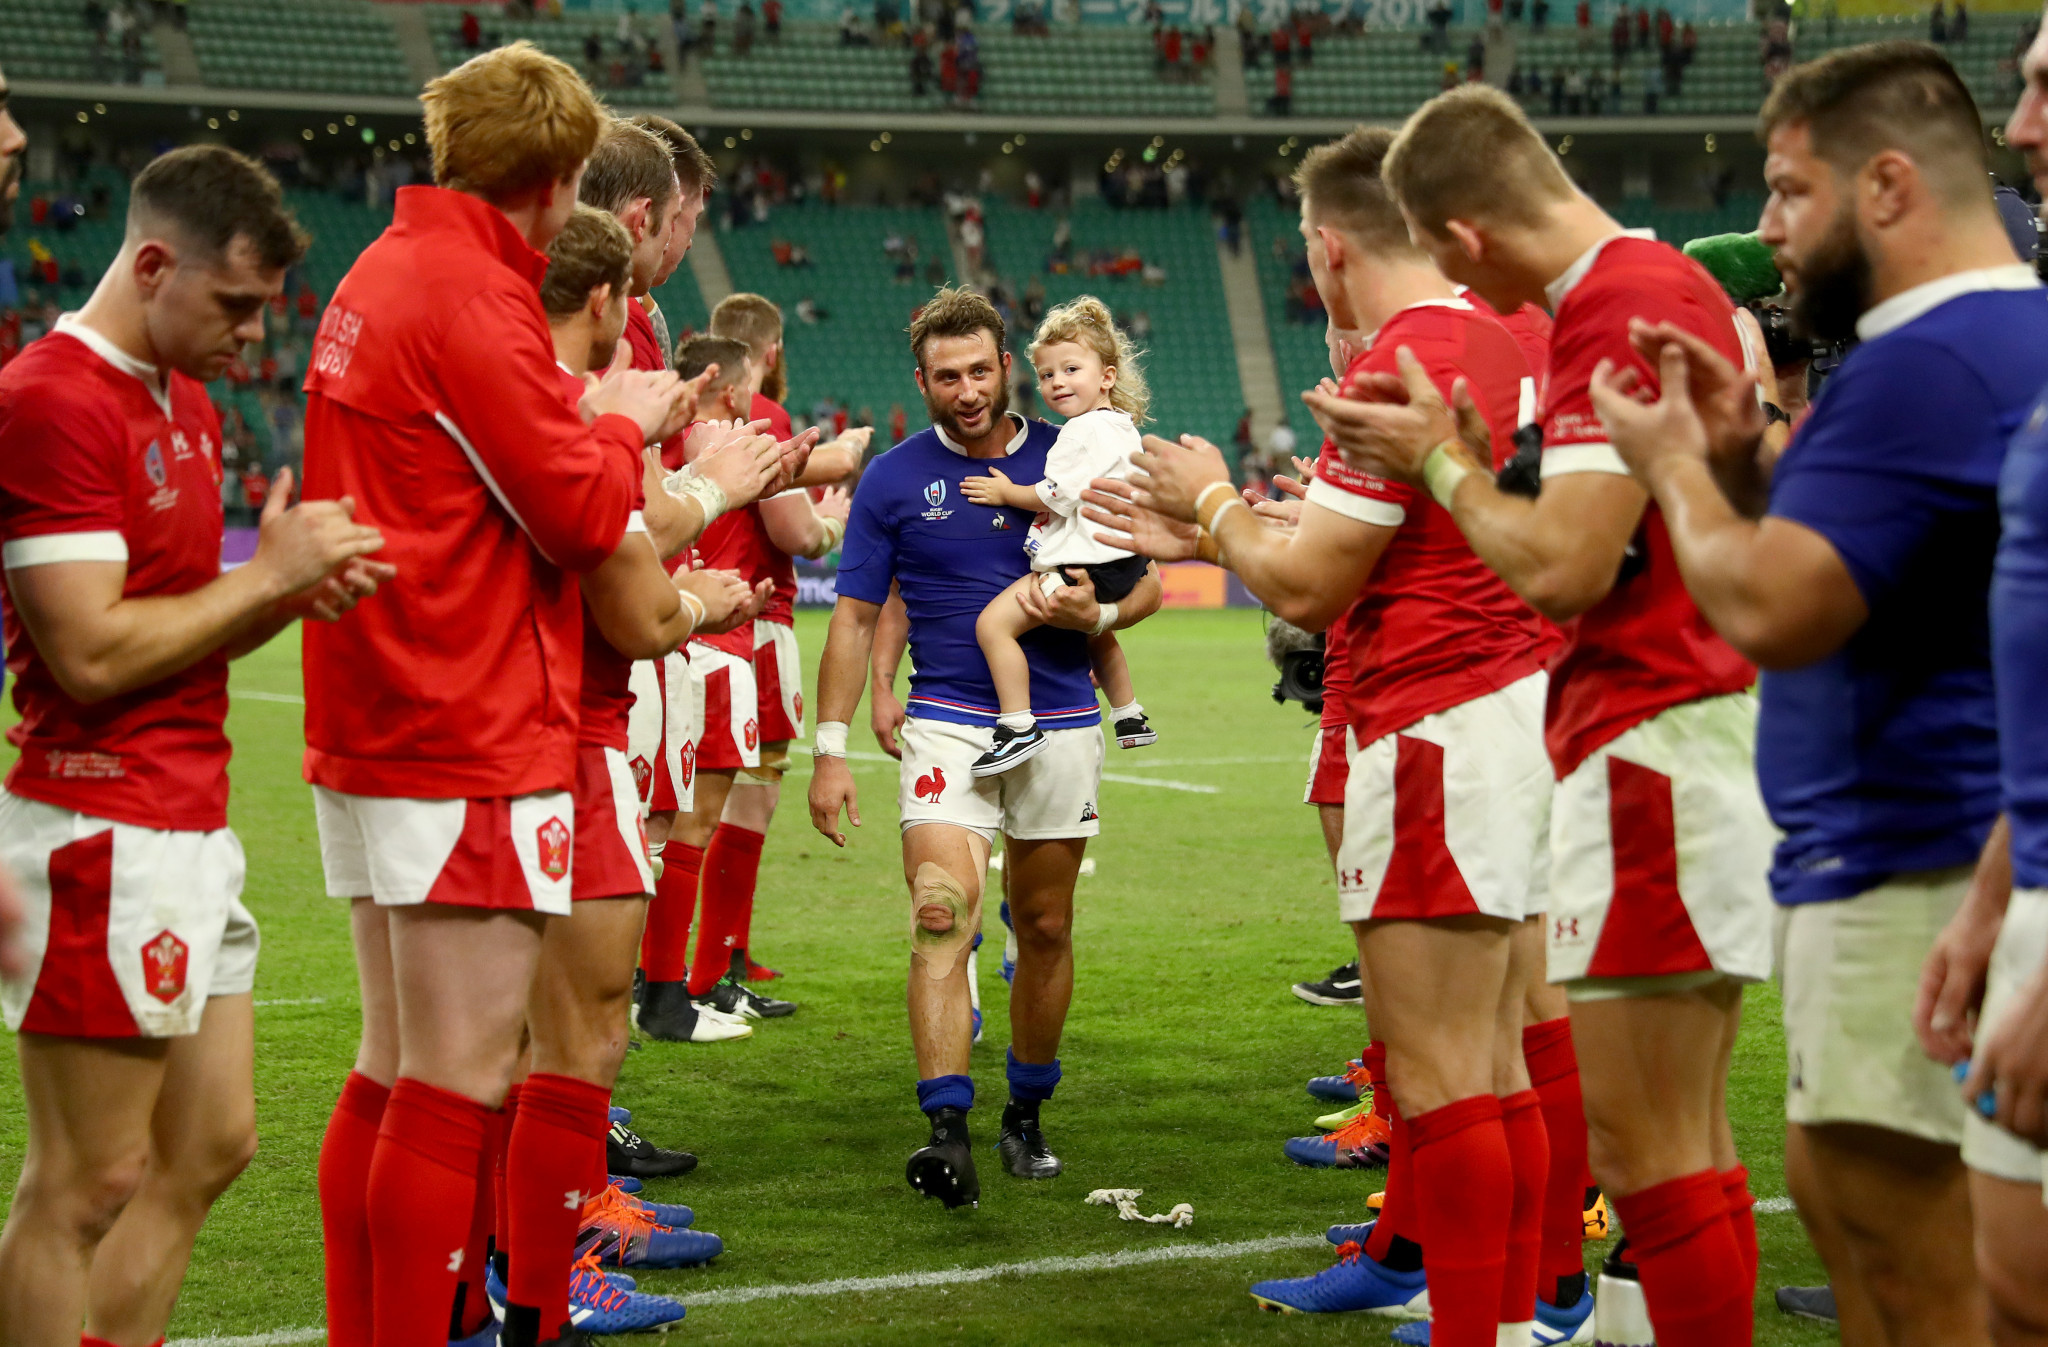 With Wales narrowly winning 20-19, the victors applauded the French team off the pitch ©Getty Images